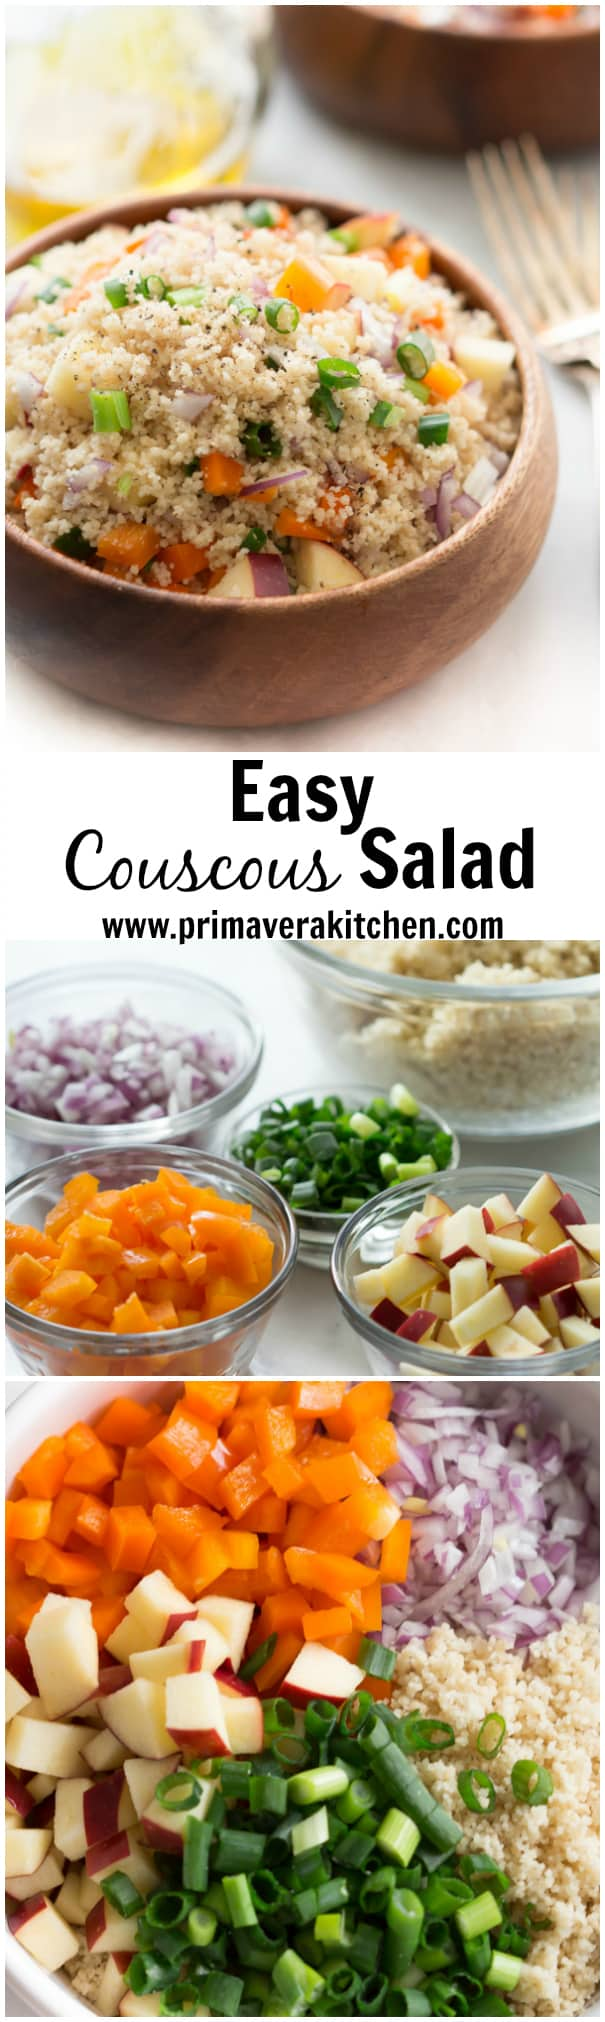 Cold couscous recipes easy